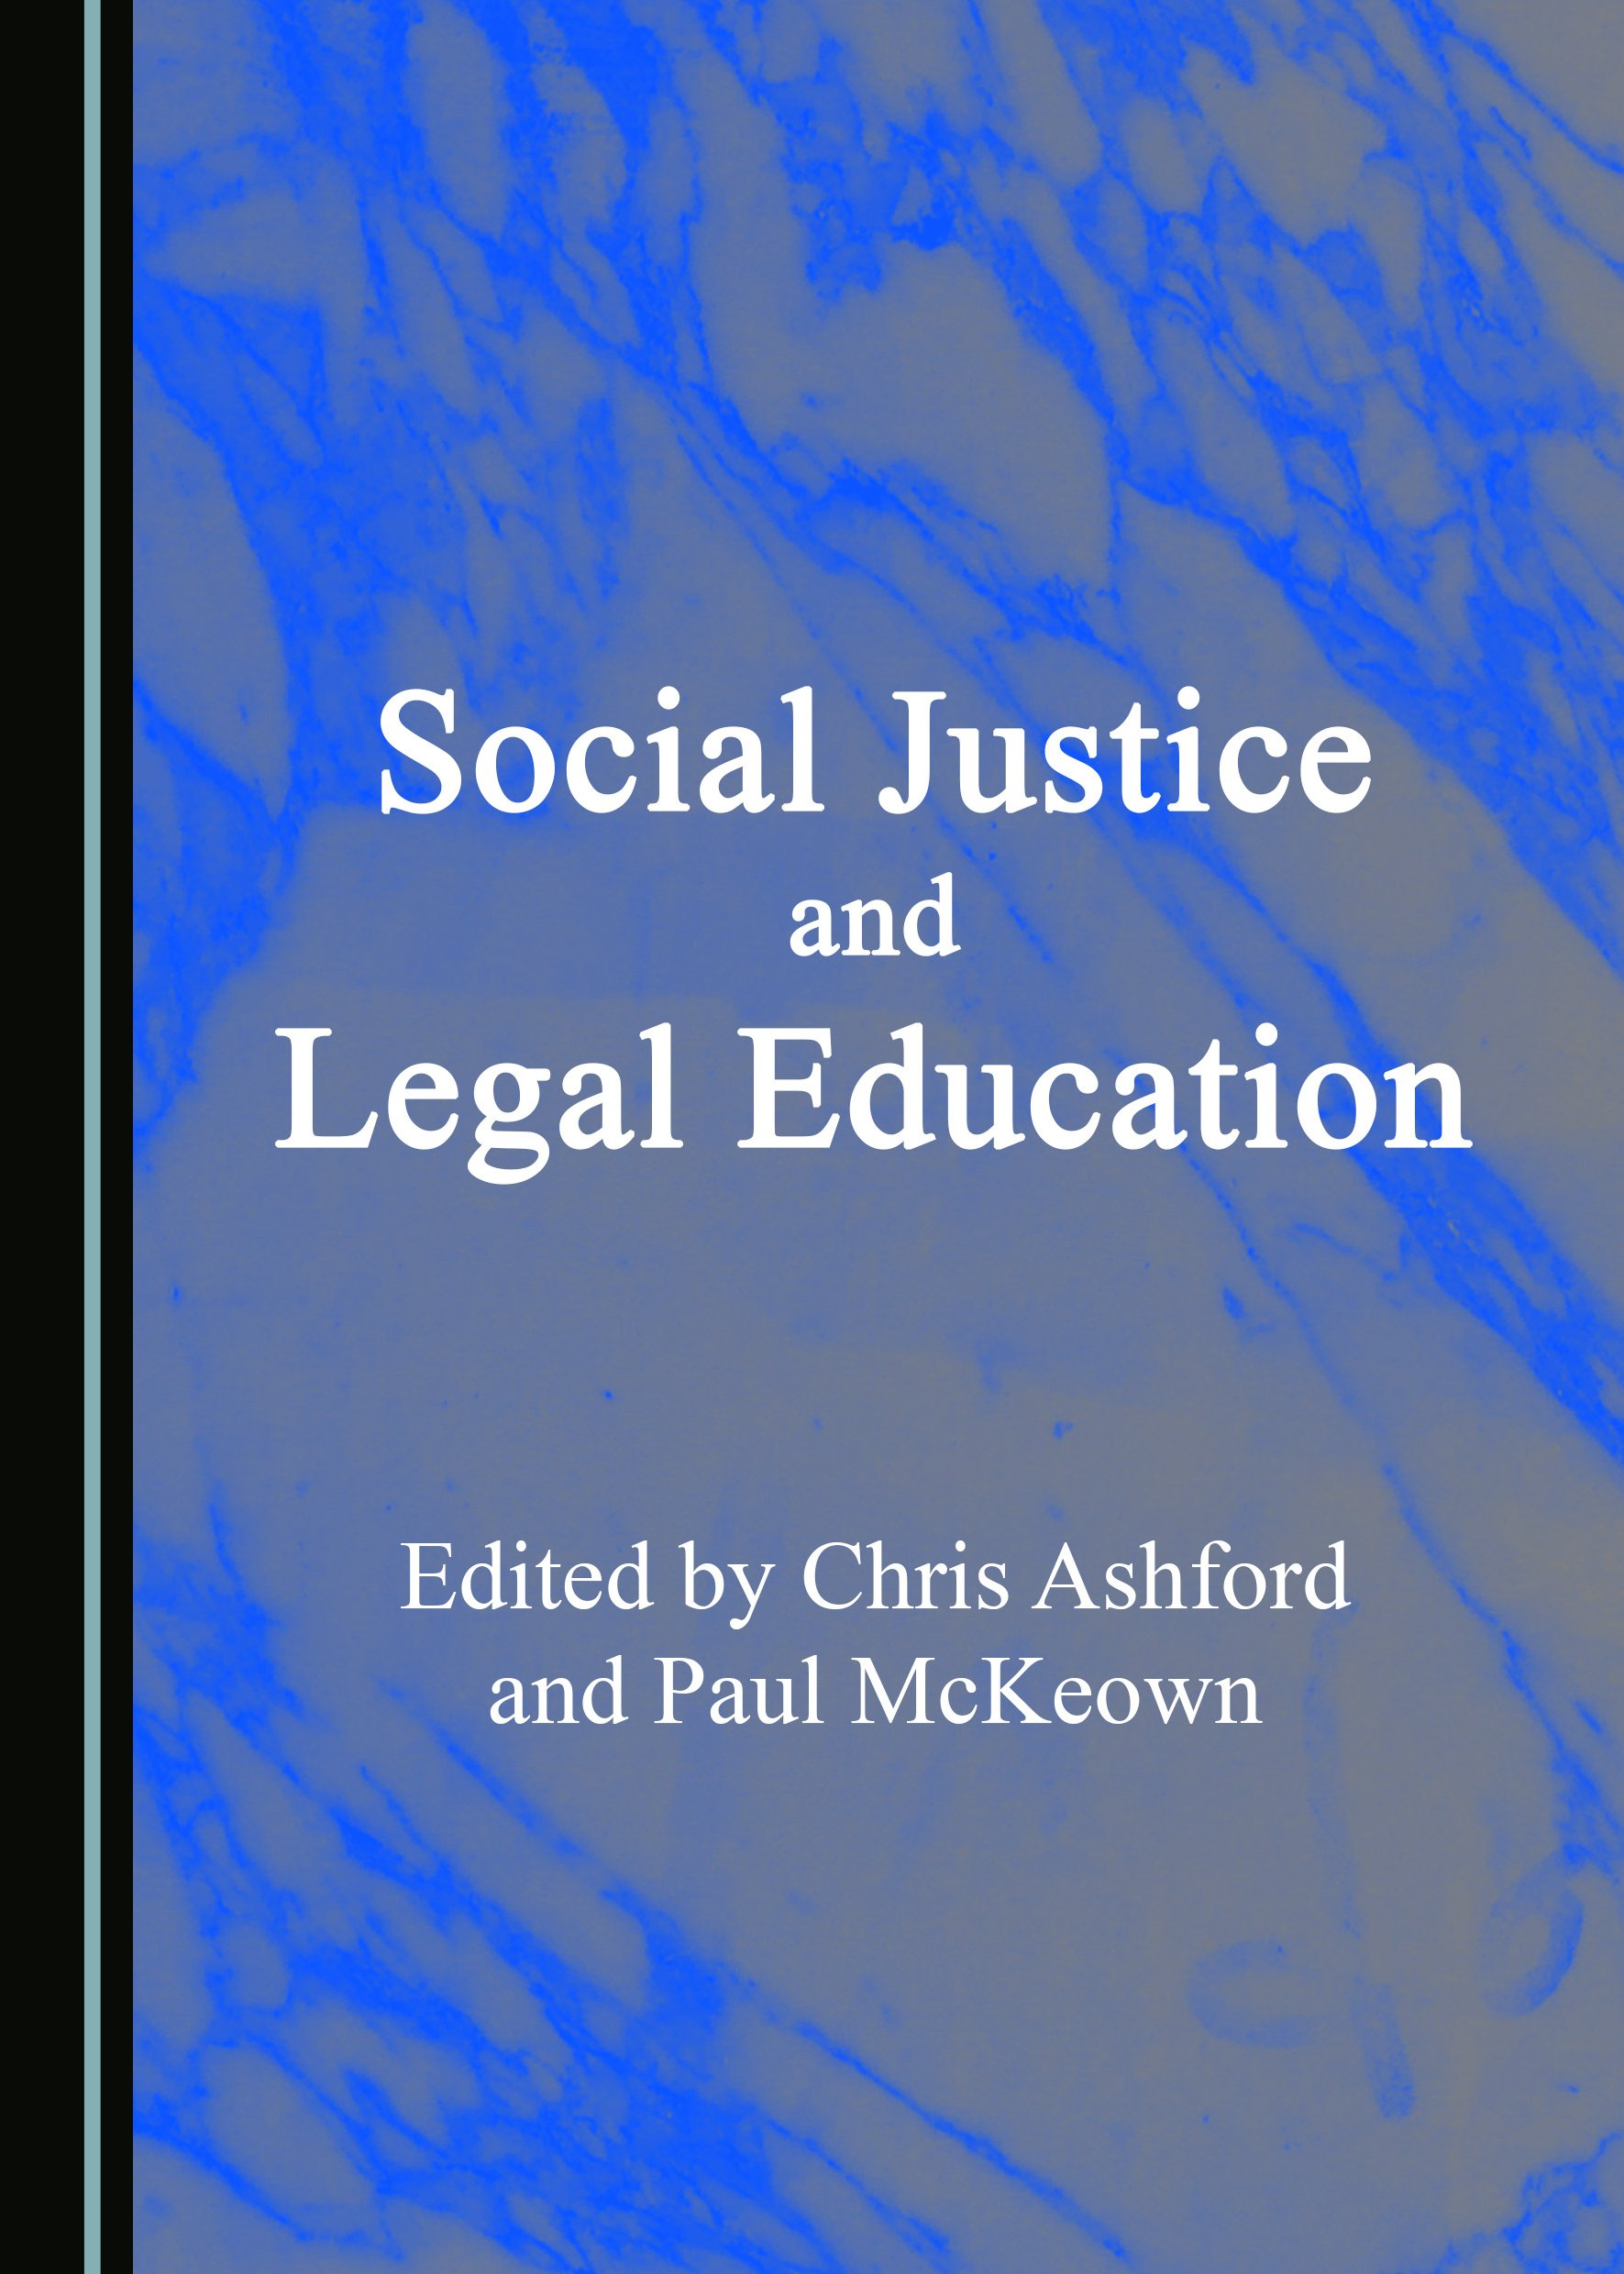 Social Justice and Legal Education